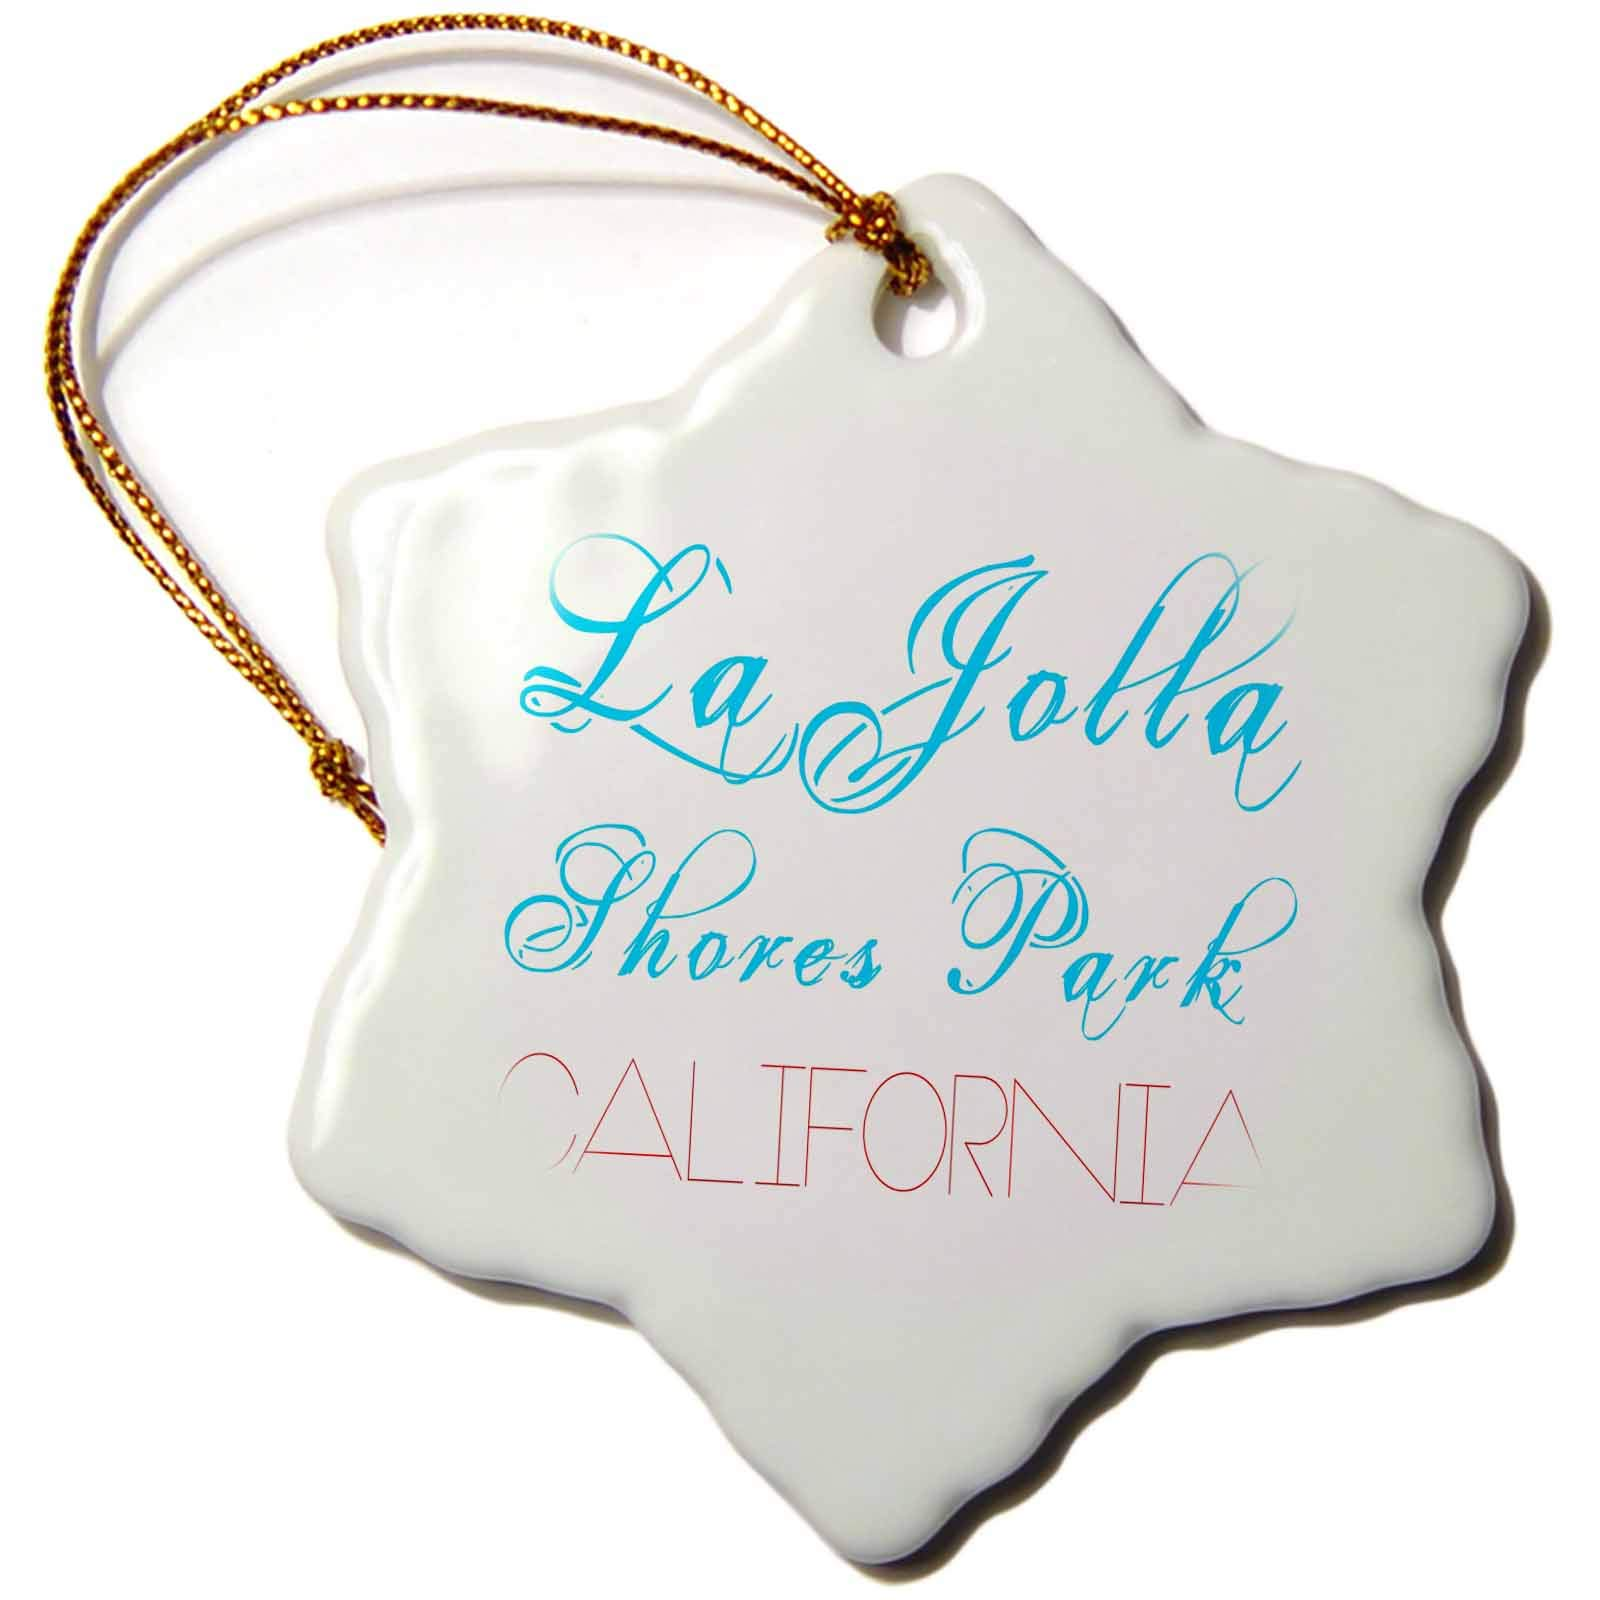 3dRose Alexis Design - American Beaches - La Jolla Shores Park, California. Red, blue text on white - 3 inch Snowflake Porcelain Ornament (orn_288393_1)